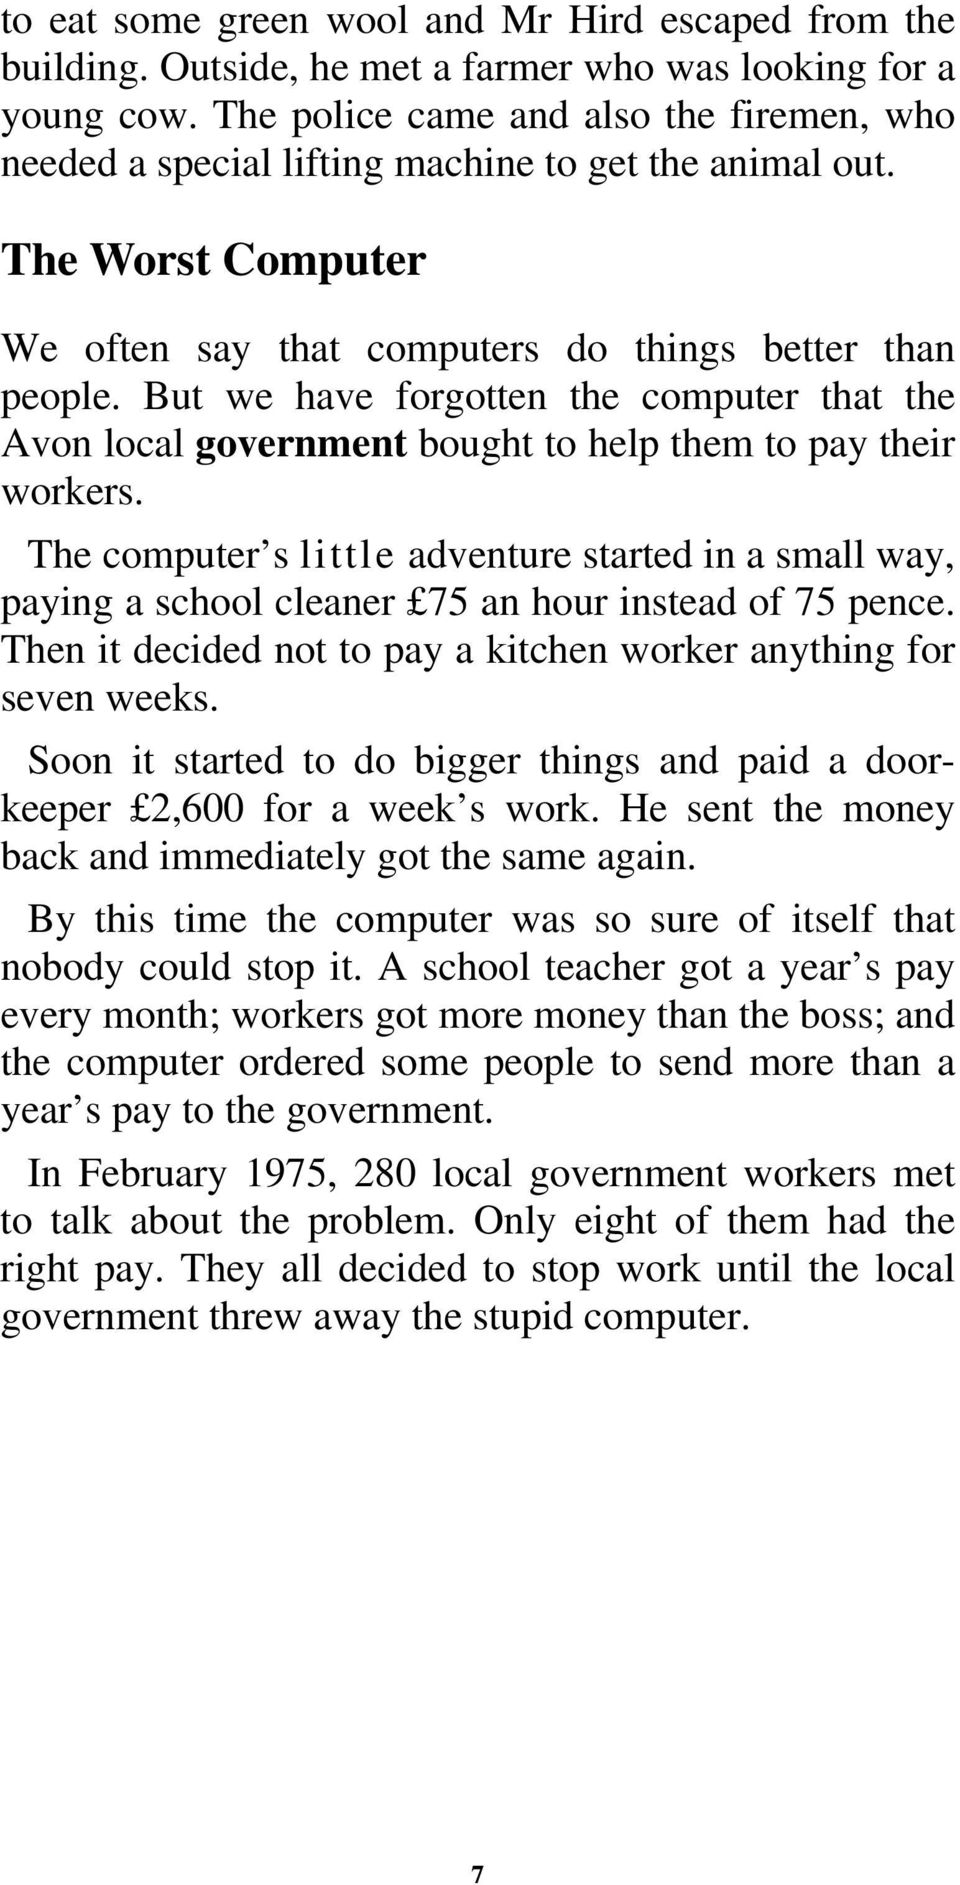 But we have forgotten the computer that the Avon local government bought to help them to pay their workers.